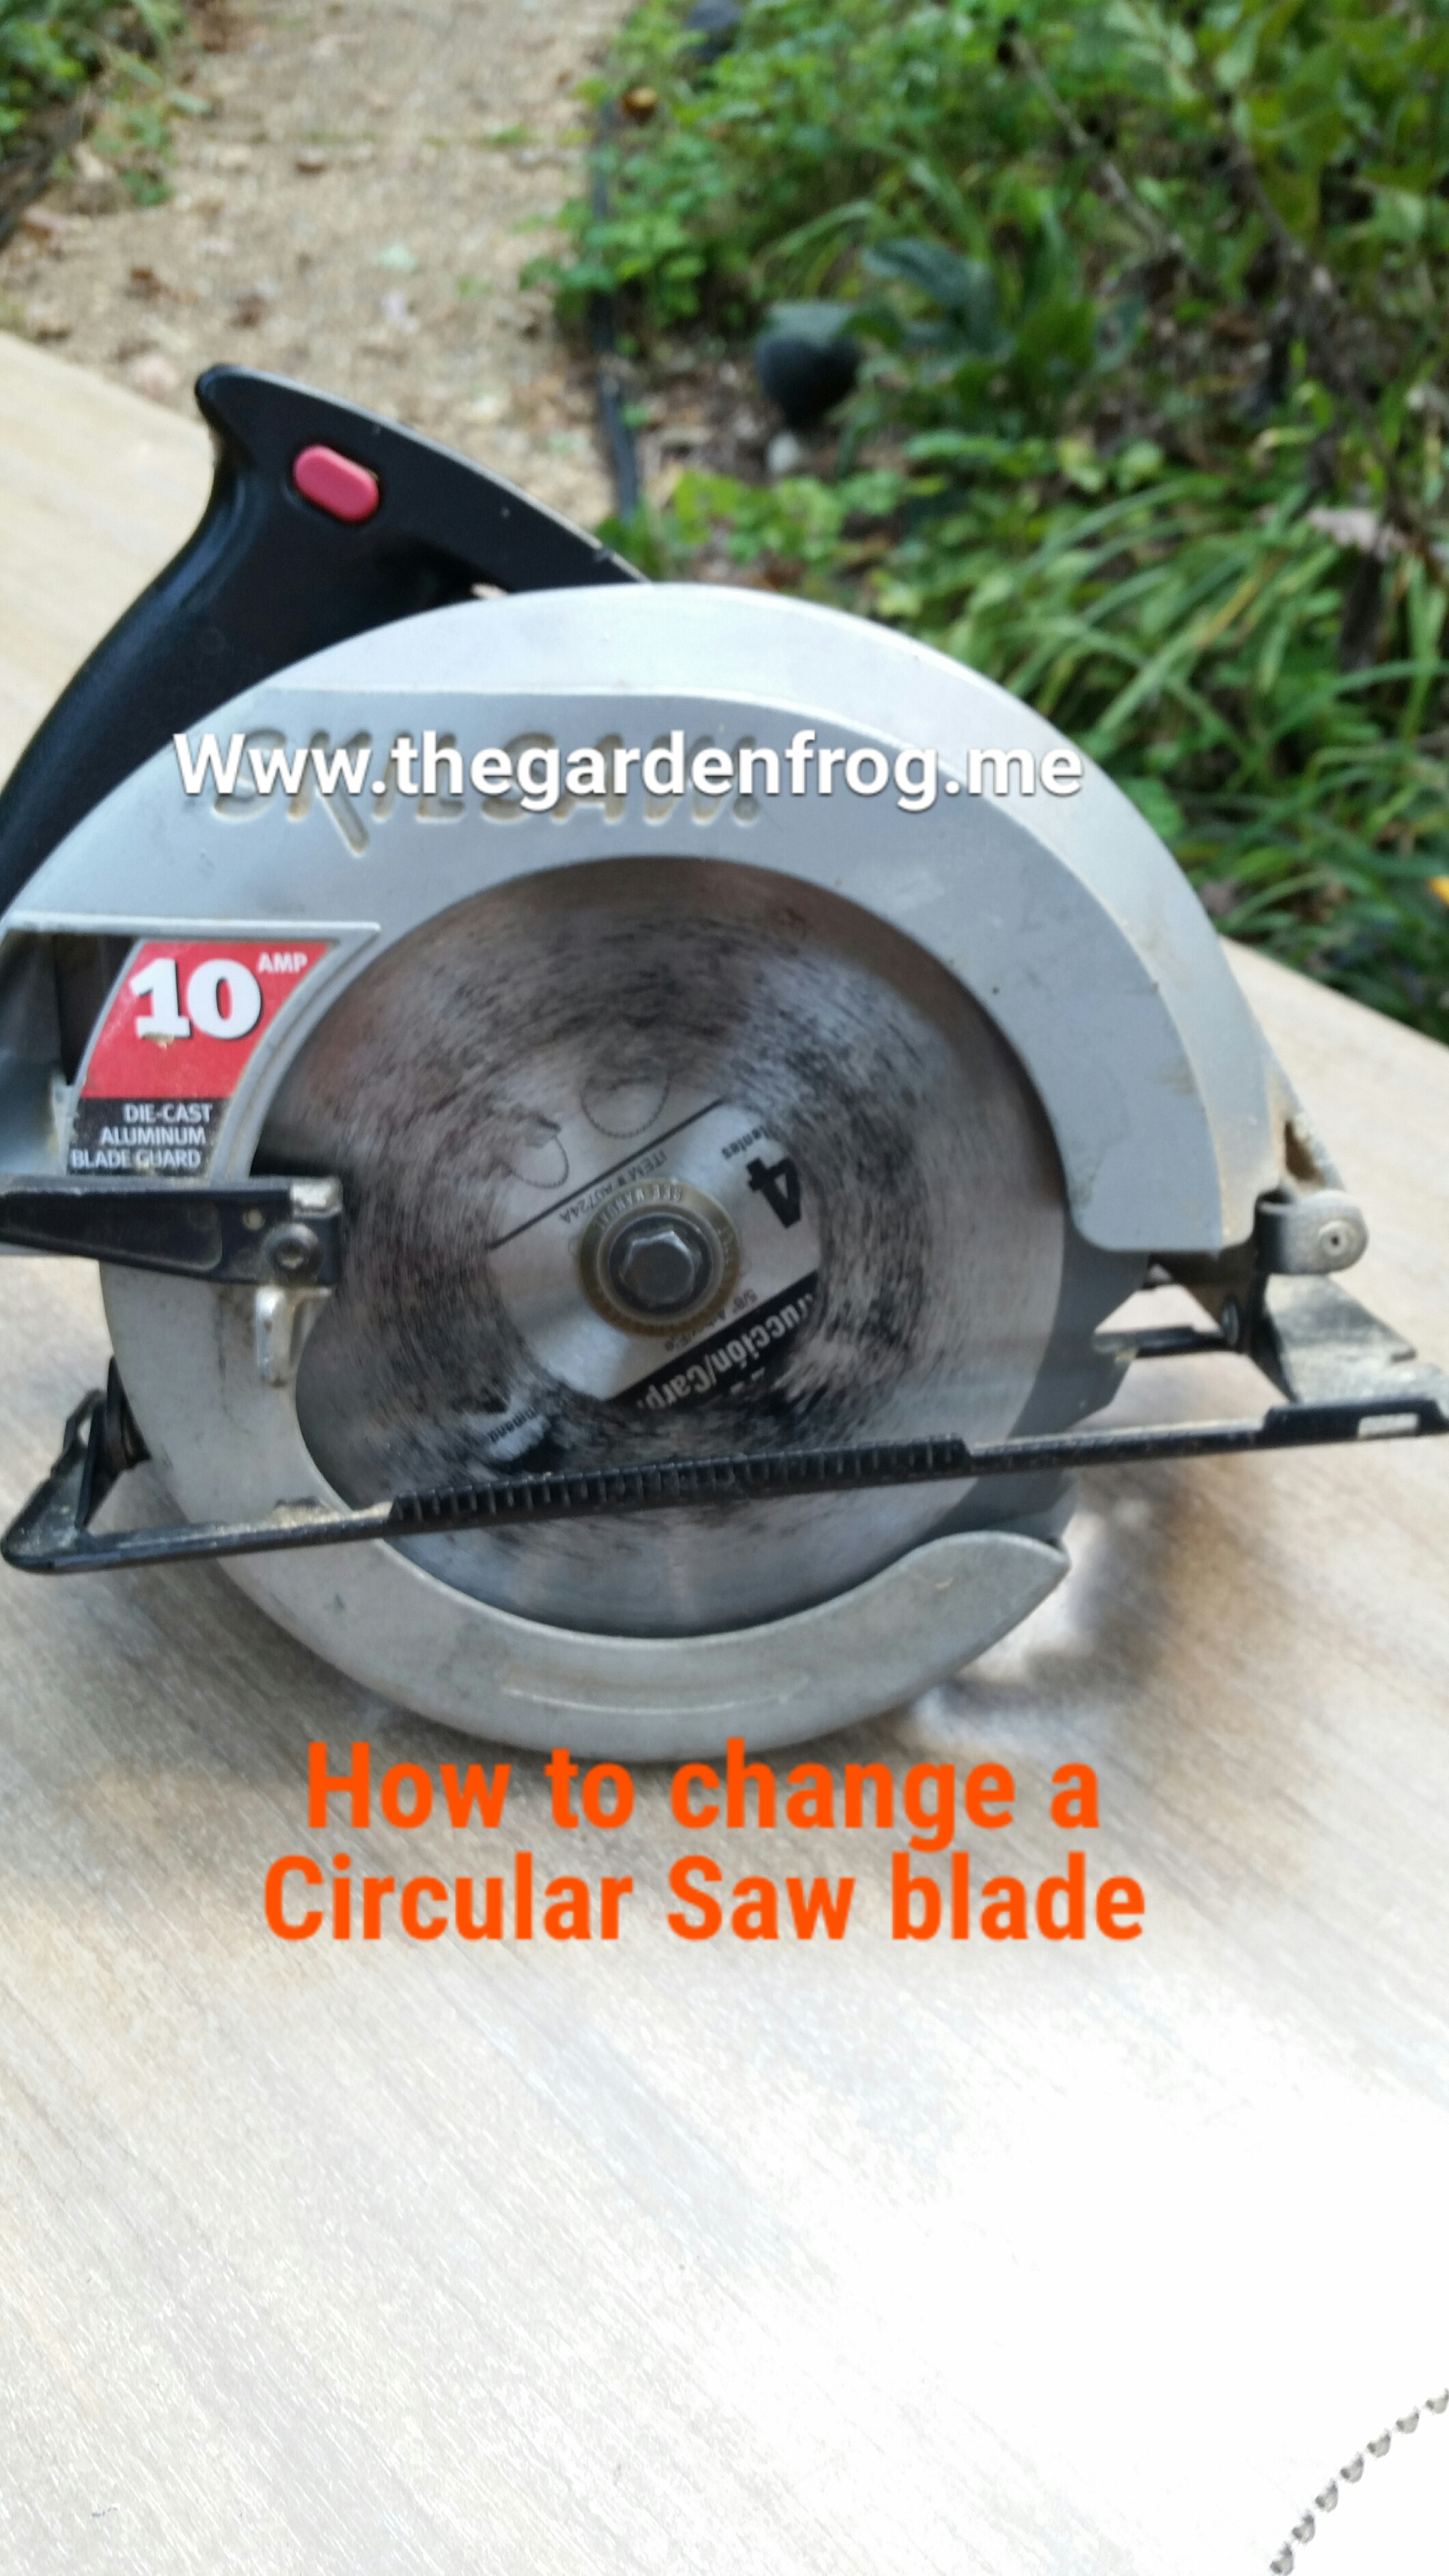 How to change a circular saw blade how to change a circular saw blade greentooth